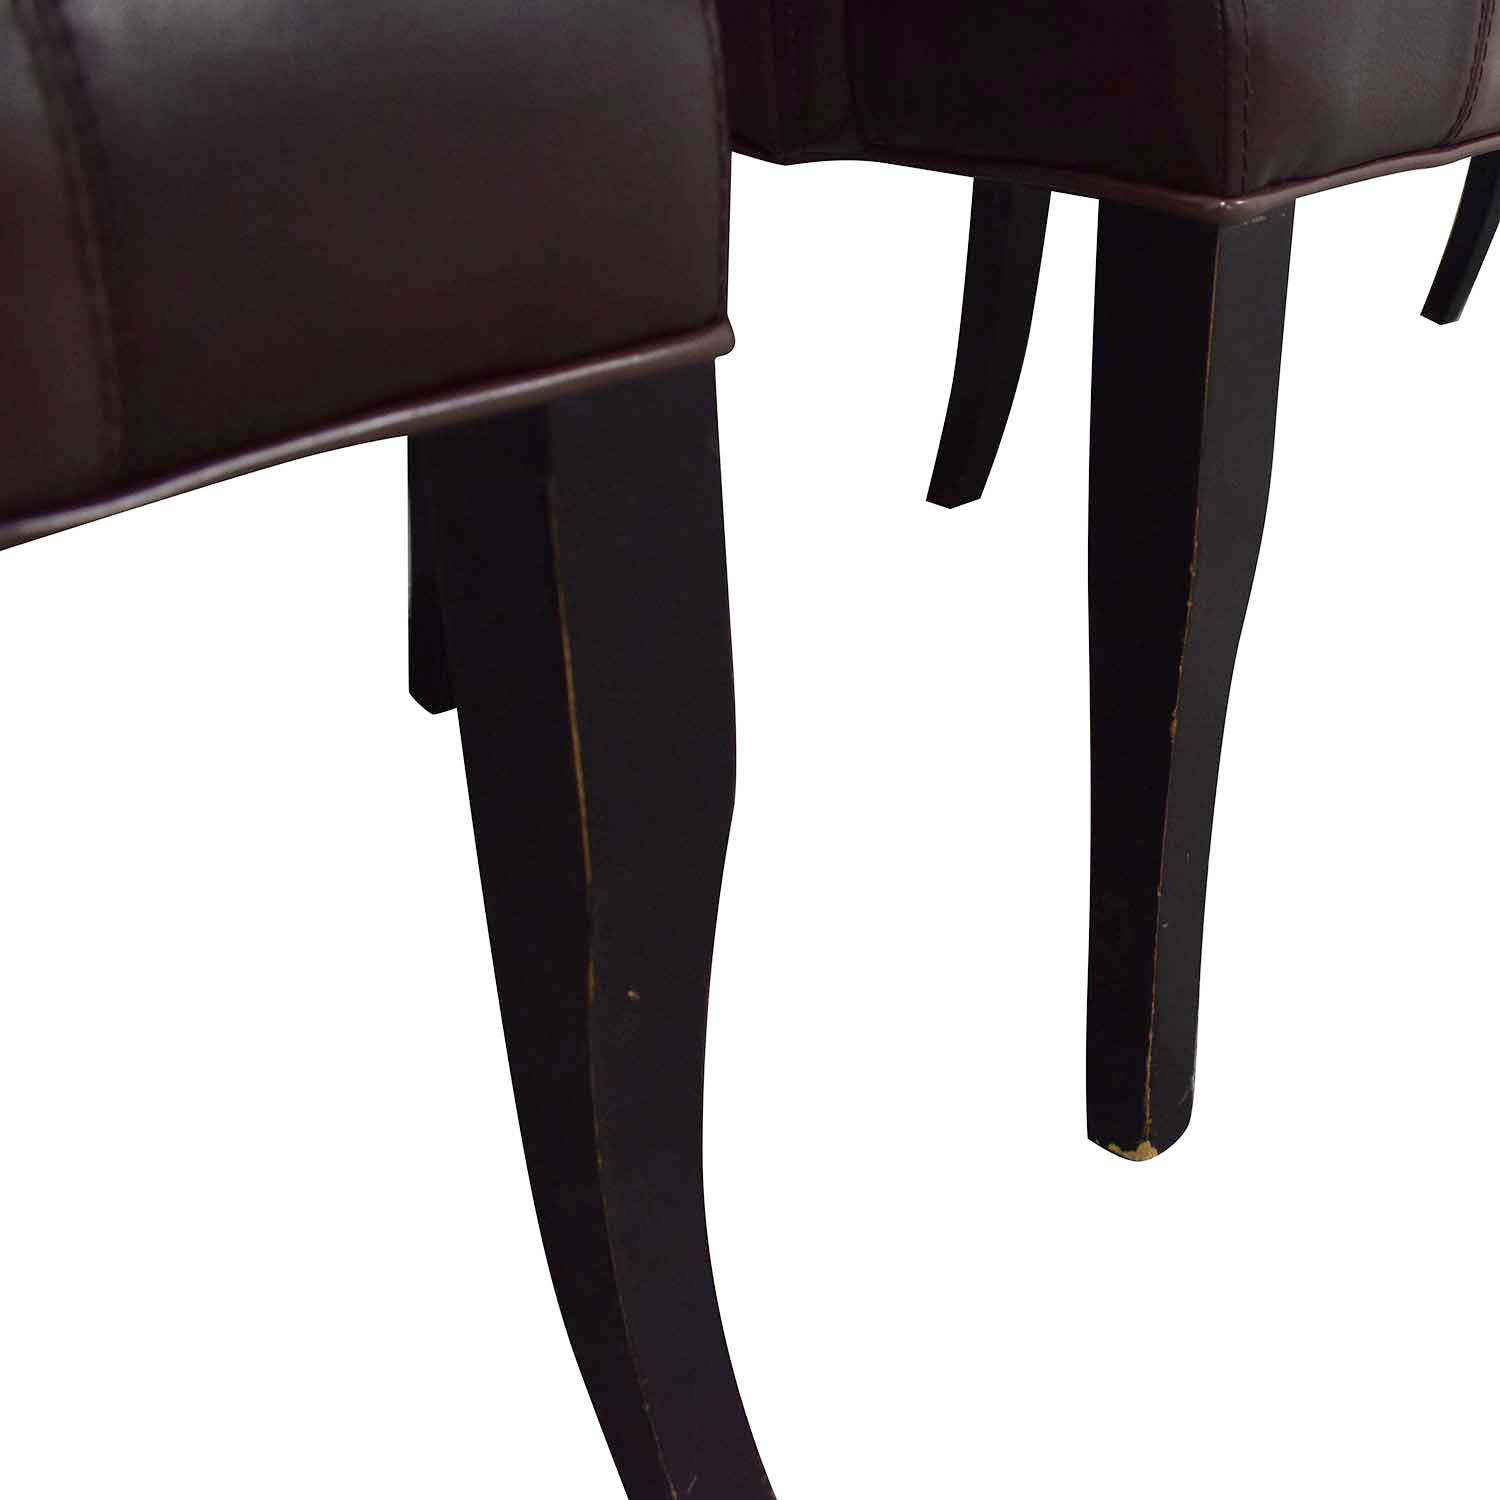 buy Bloomingdale's Brown Leather Dining Chairs Bloomingdale's Chairs